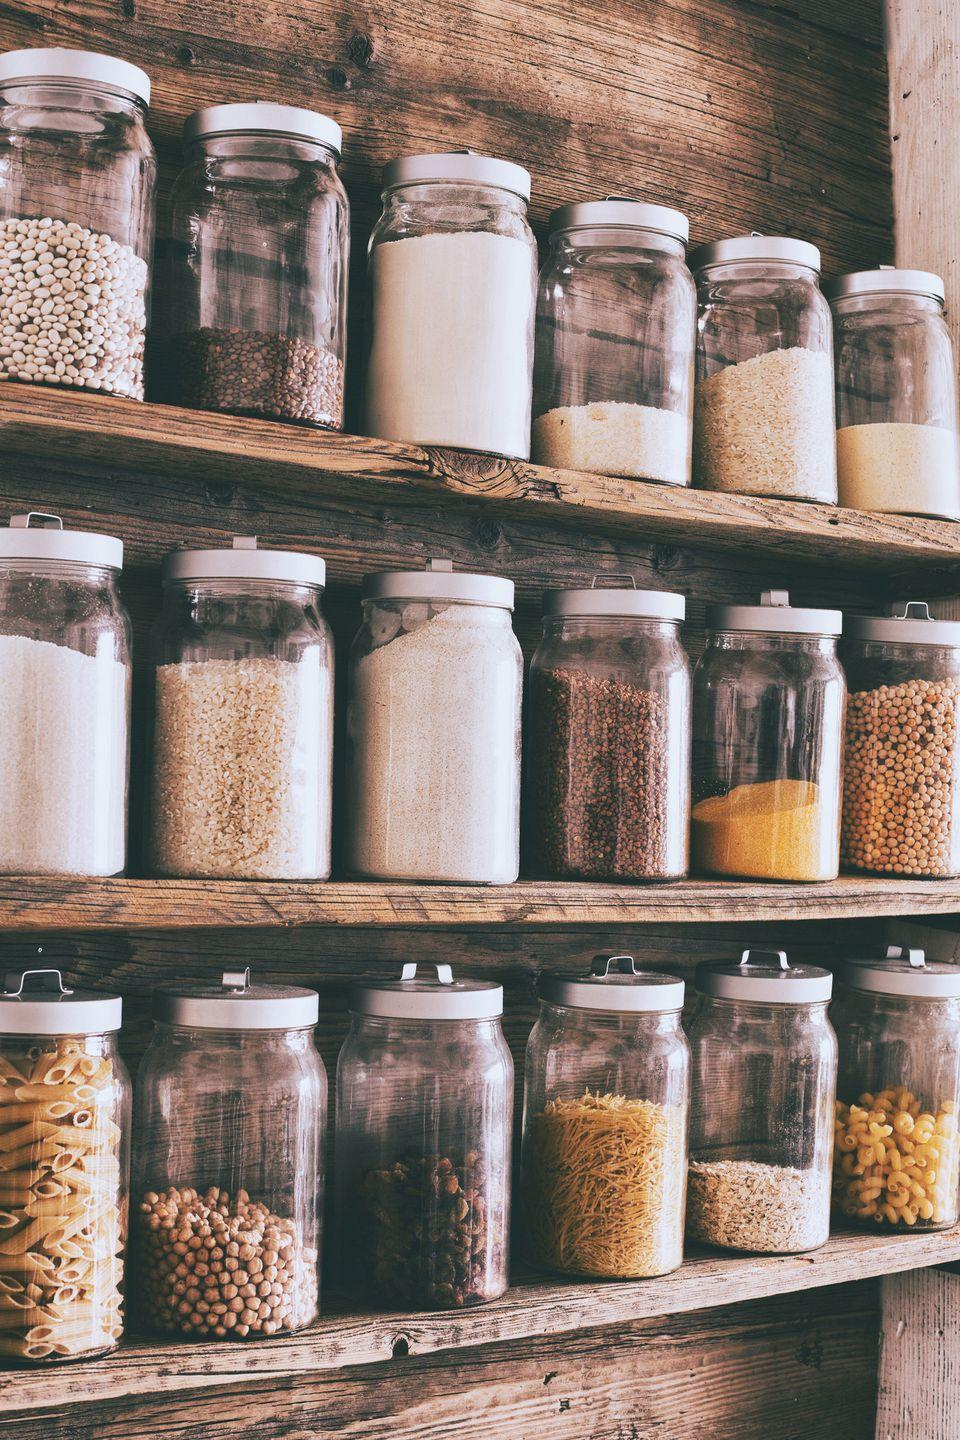 """<p>You can't stay efficient and organized while cooking in a messy kitchen that's completely disorganized. When you start searching for ingredients you need or tearing apart drawers looking for one specific tool, you're wasting time and making the process longer. Chef <a href=""""https://mymillennialkitchen.com/"""" rel=""""nofollow noopener"""" target=""""_blank"""" data-ylk=""""slk:Michele Sidorenkov"""" class=""""link rapid-noclick-resp"""">Michele Sidorenkov</a>, RDN, of My Millennial Kitchen, says, """"You should really focus on organizing your kitchen in a way where items make sense together. In my kitchen at home, I have my knives, cutting boards, measuring spoons, and prep bowls all together in one place. Having those items easily on hand means I am not running from one side of the kitchen to the other for items I would be using all together."""" </p>"""